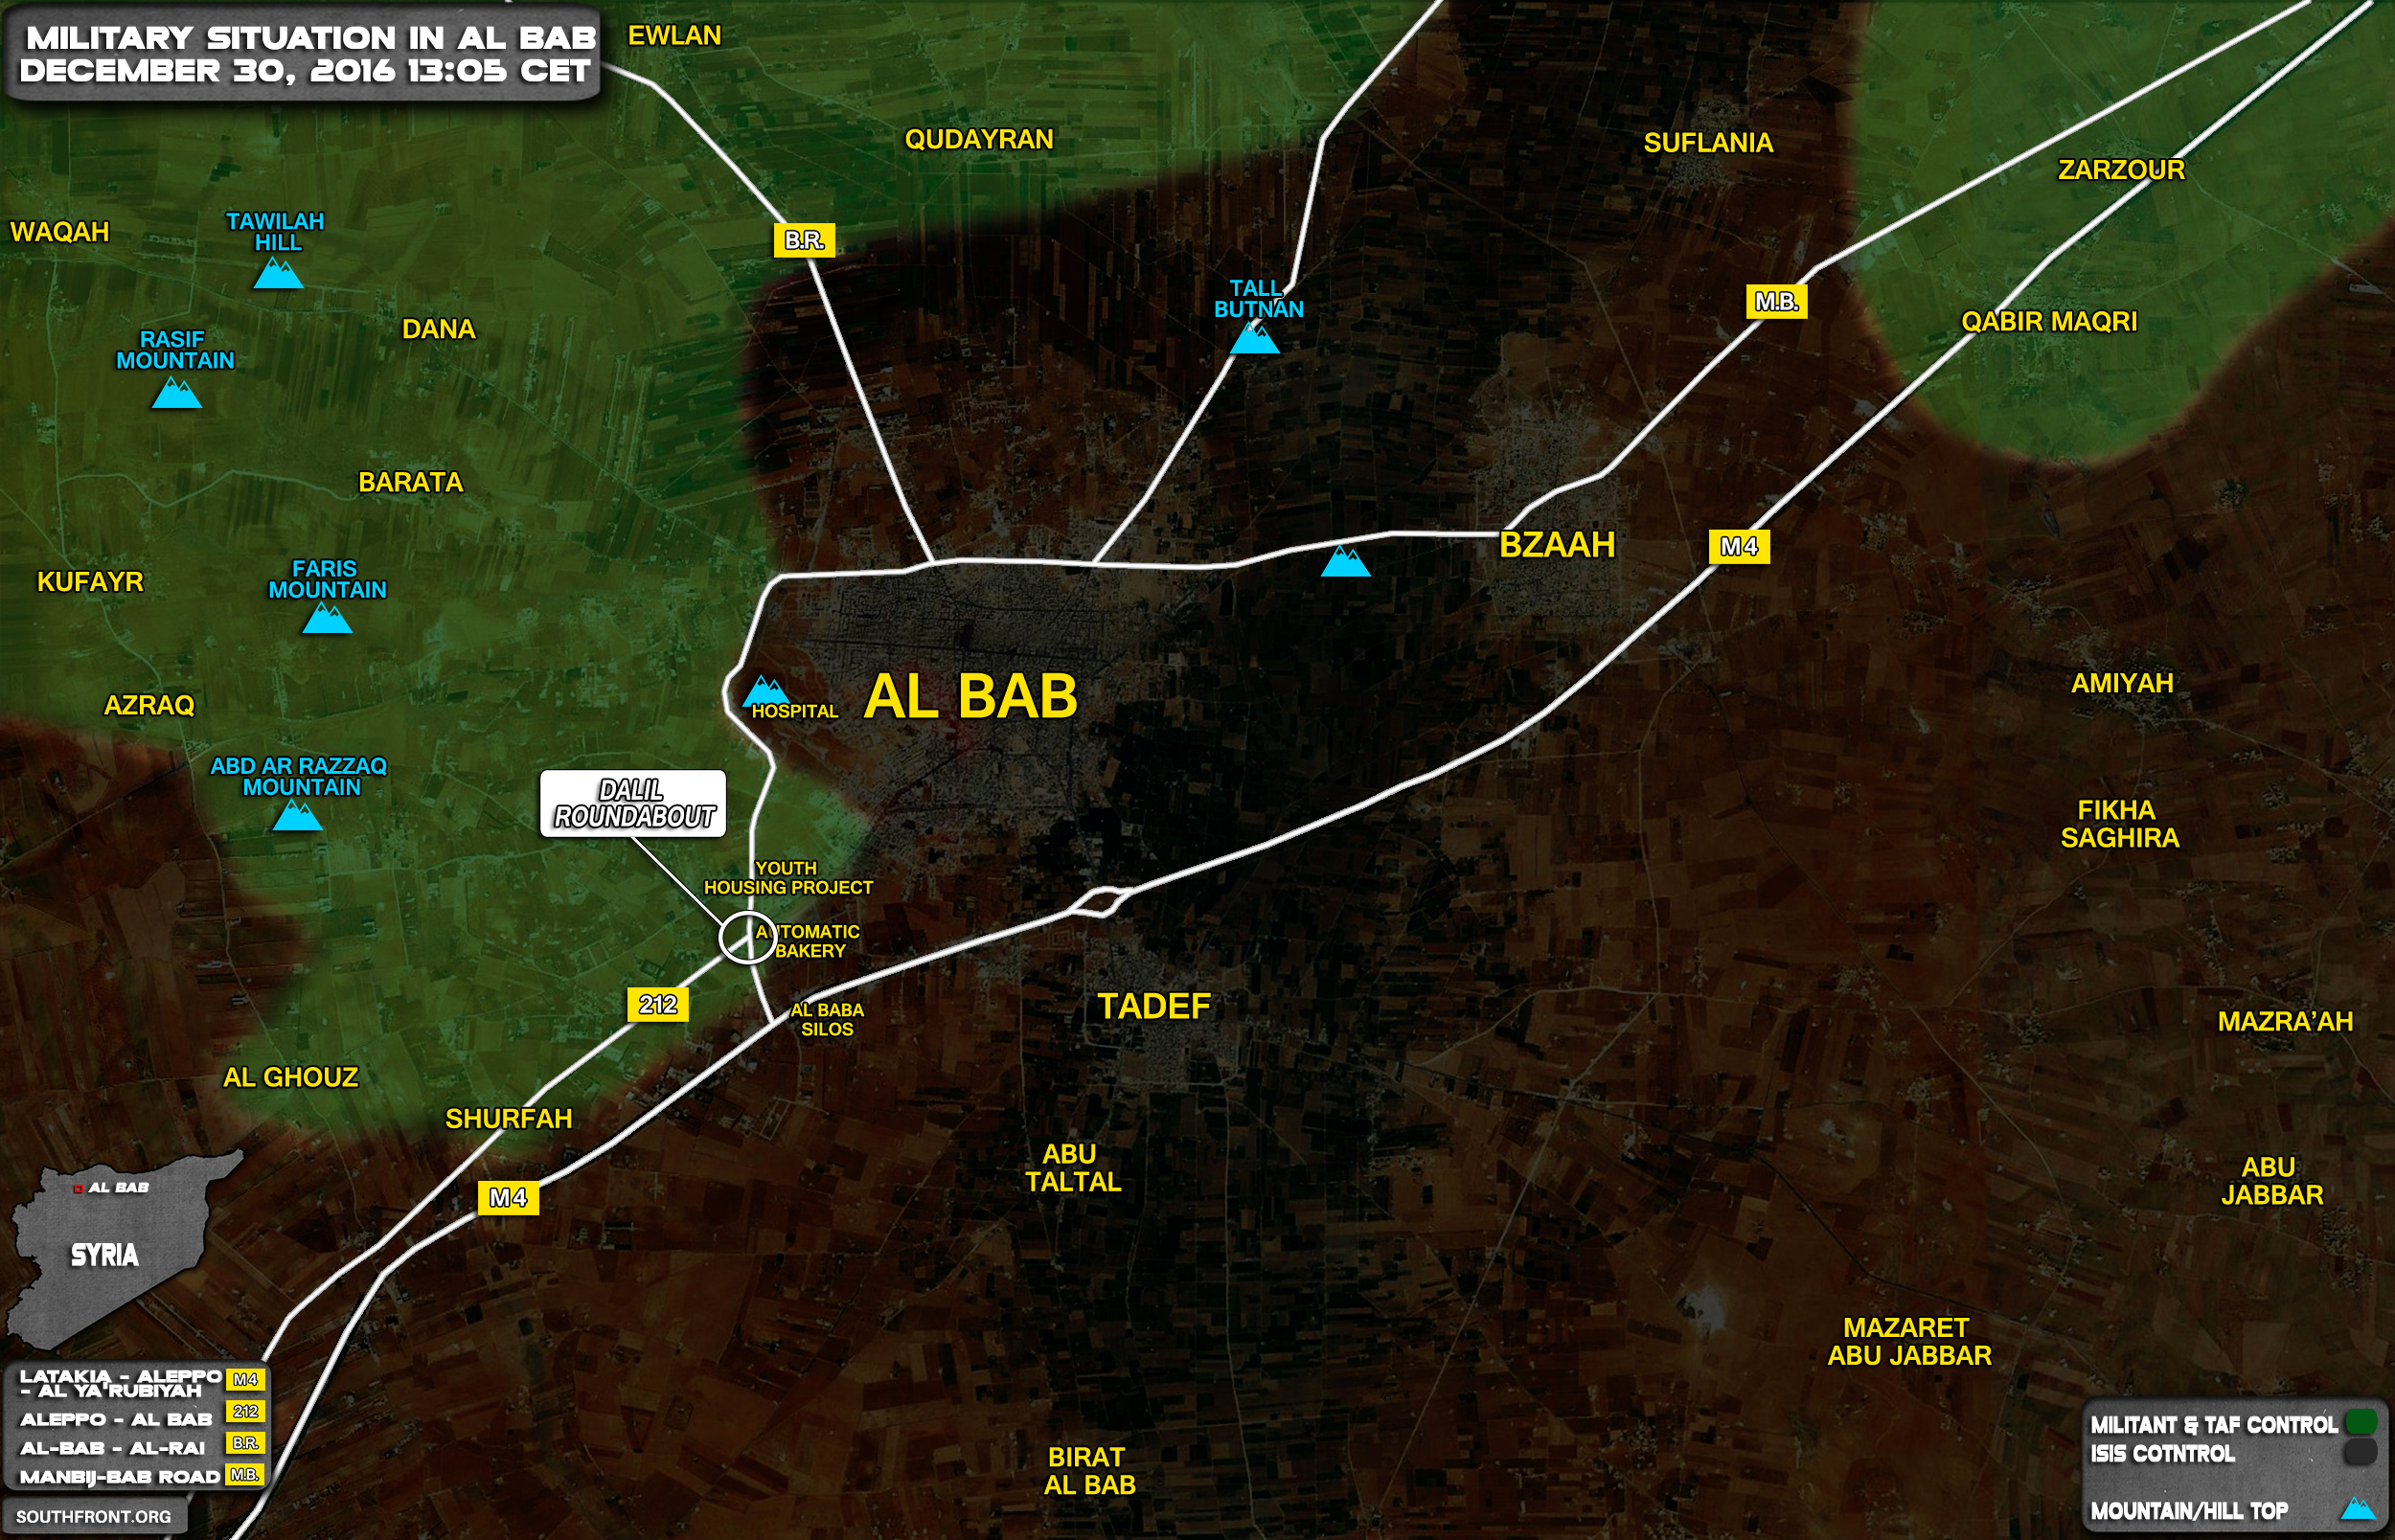 https://southfront.org/wp-content/uploads/2016/12/30dec_al-bab.jpg